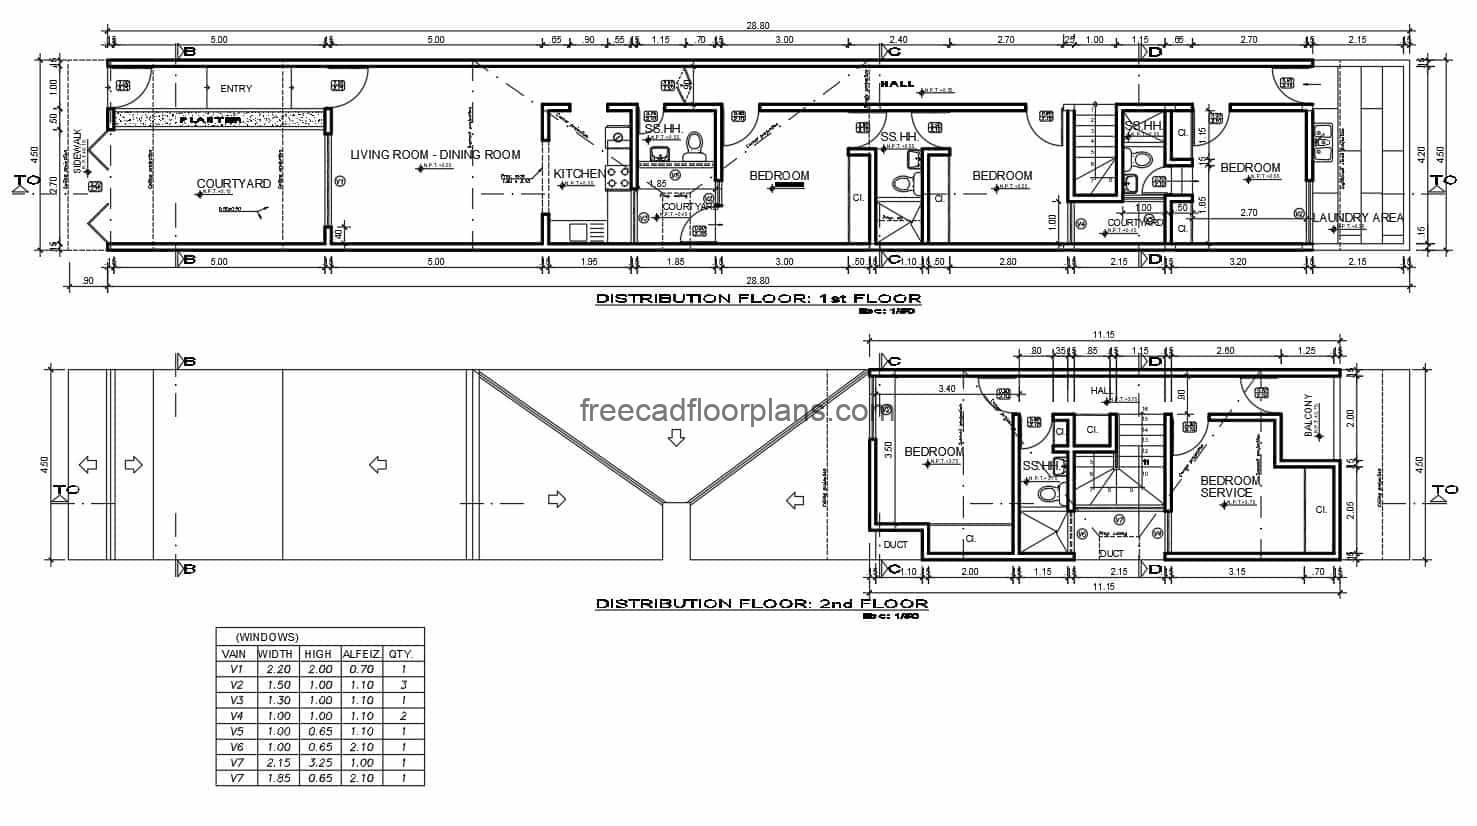 Architectural plans in autocad complete of small elongated house for free download